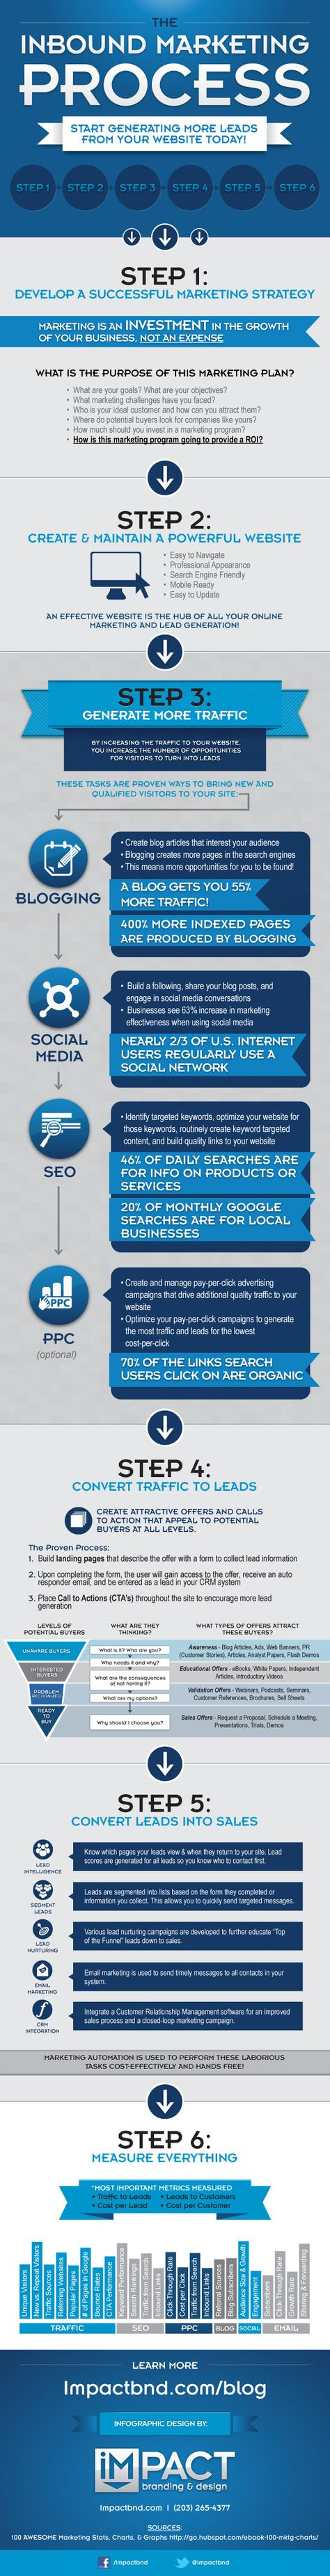 How Inbound Marketing Works, From Start to Finish [INFOGRAPHIC]